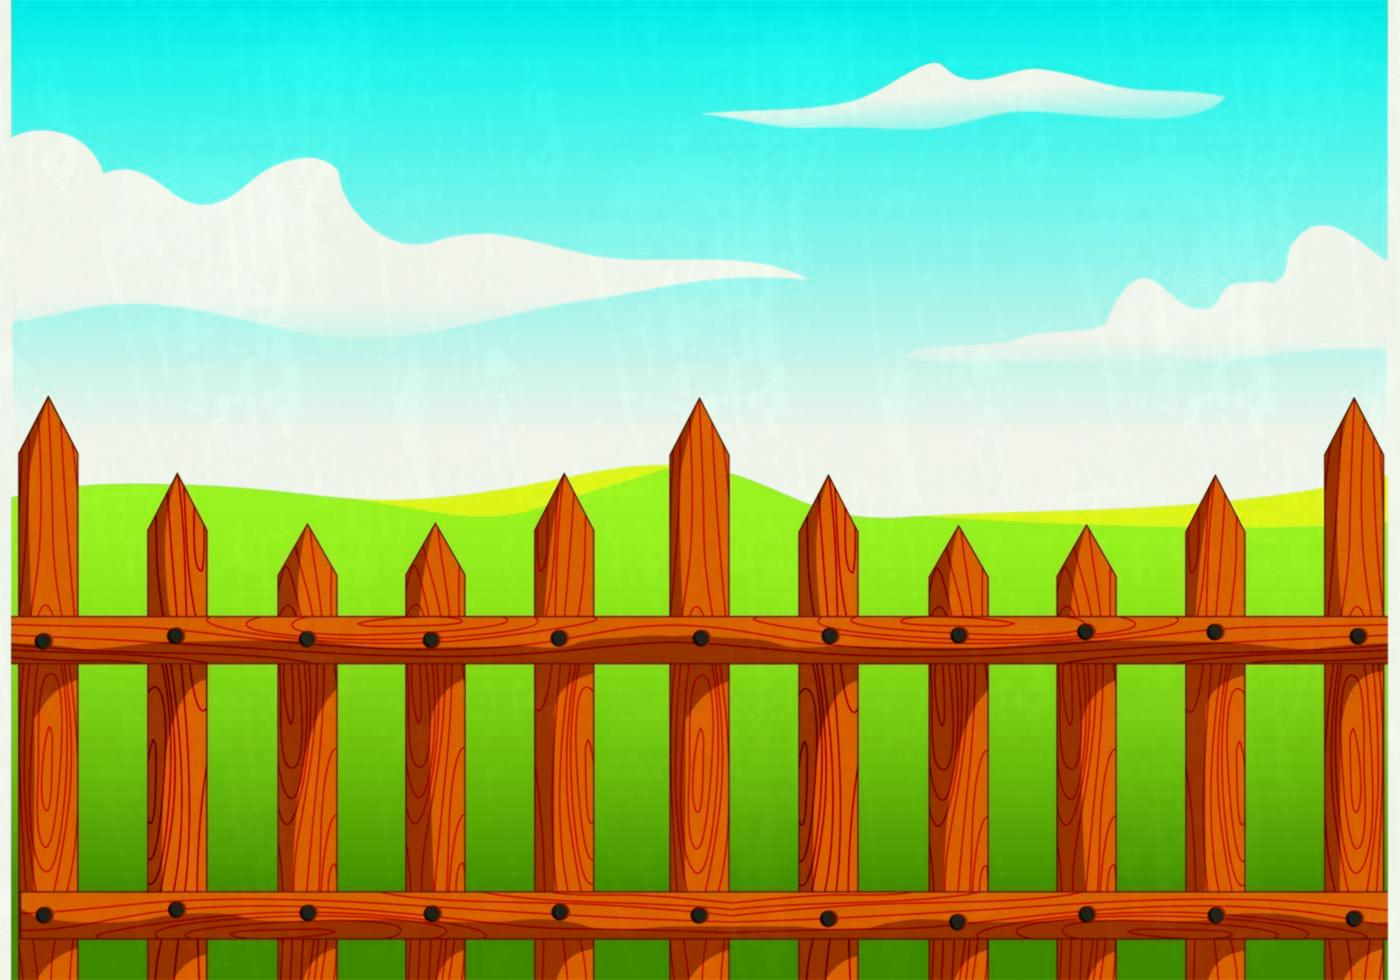 1400x980 Wooden Picket Fence Vector Download Free Art Stock